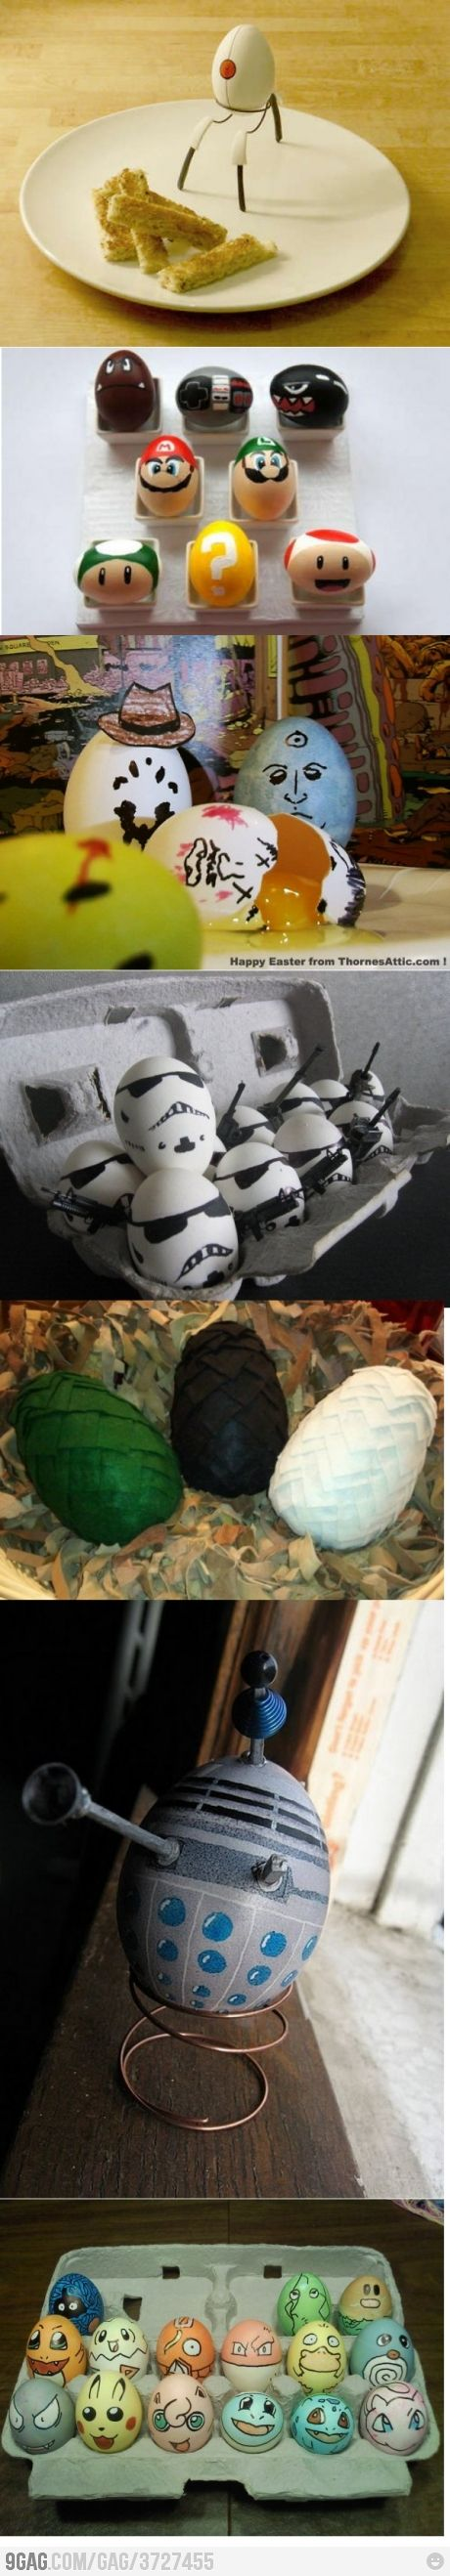 nerd eggs for Easter. Especially like the dragon eggs from Game of Thrones